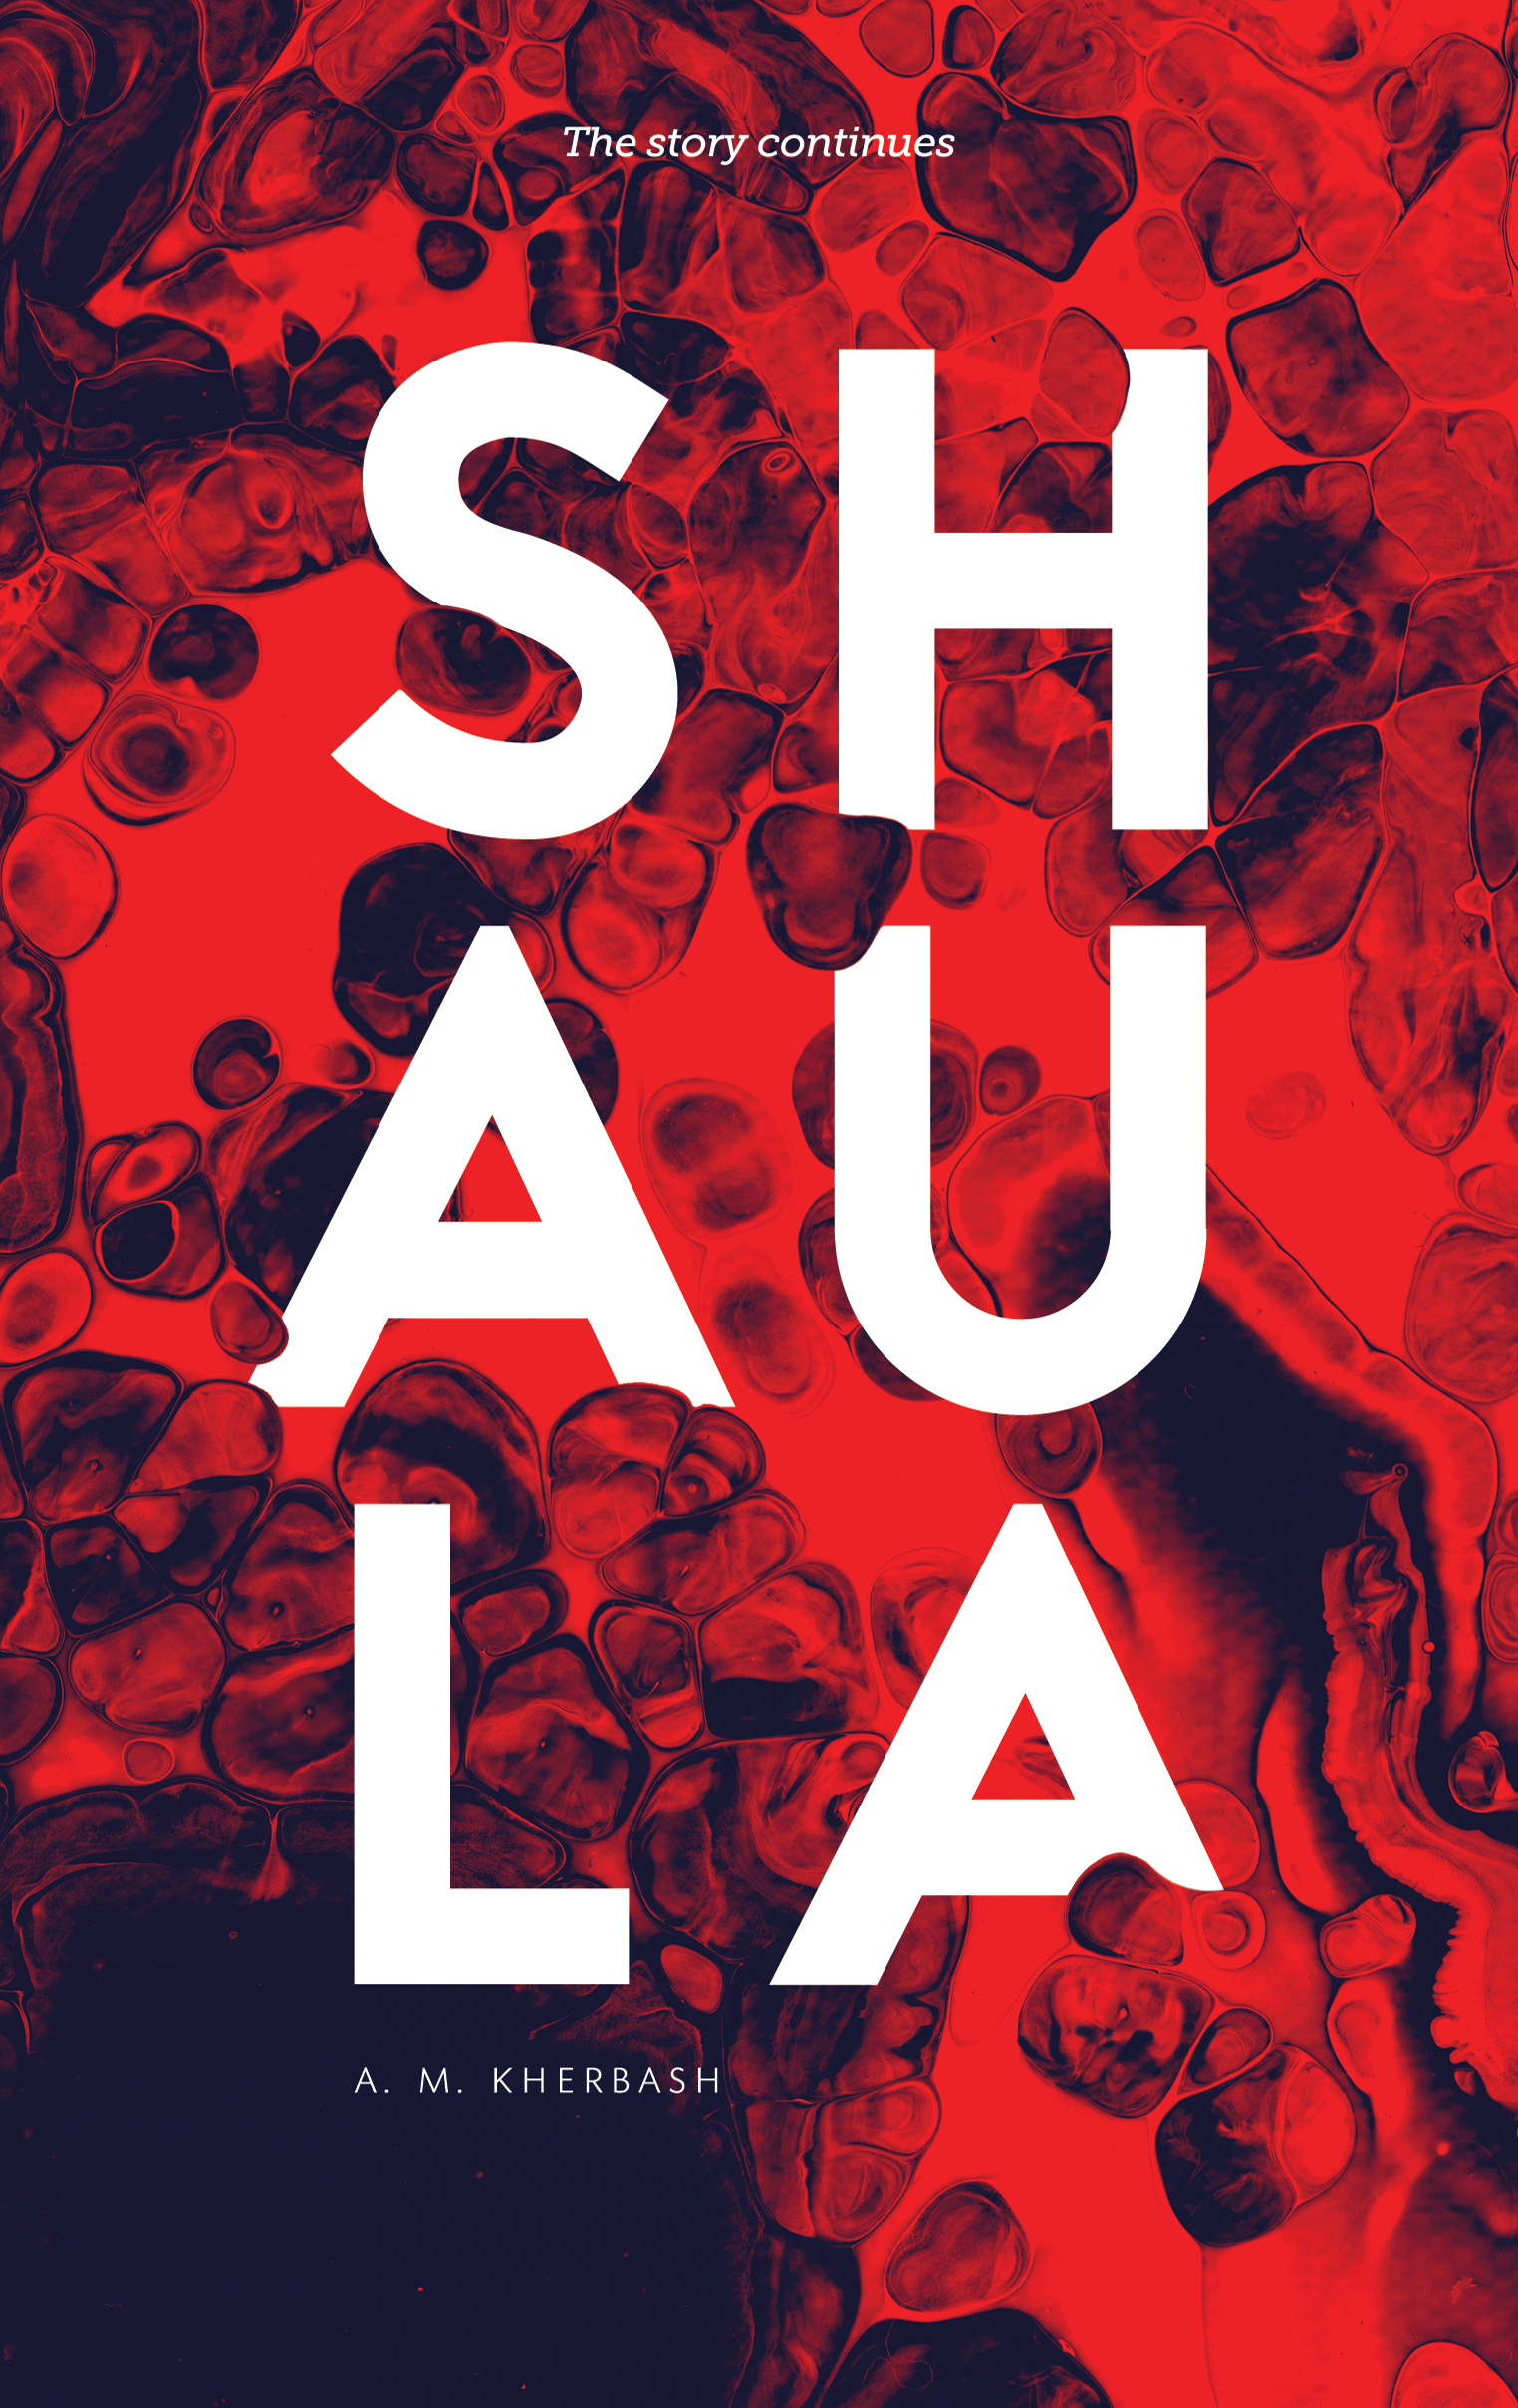 Shaula (The Stinger 2) By A.M. Kherbash Release Date? 2021 Horror Releases